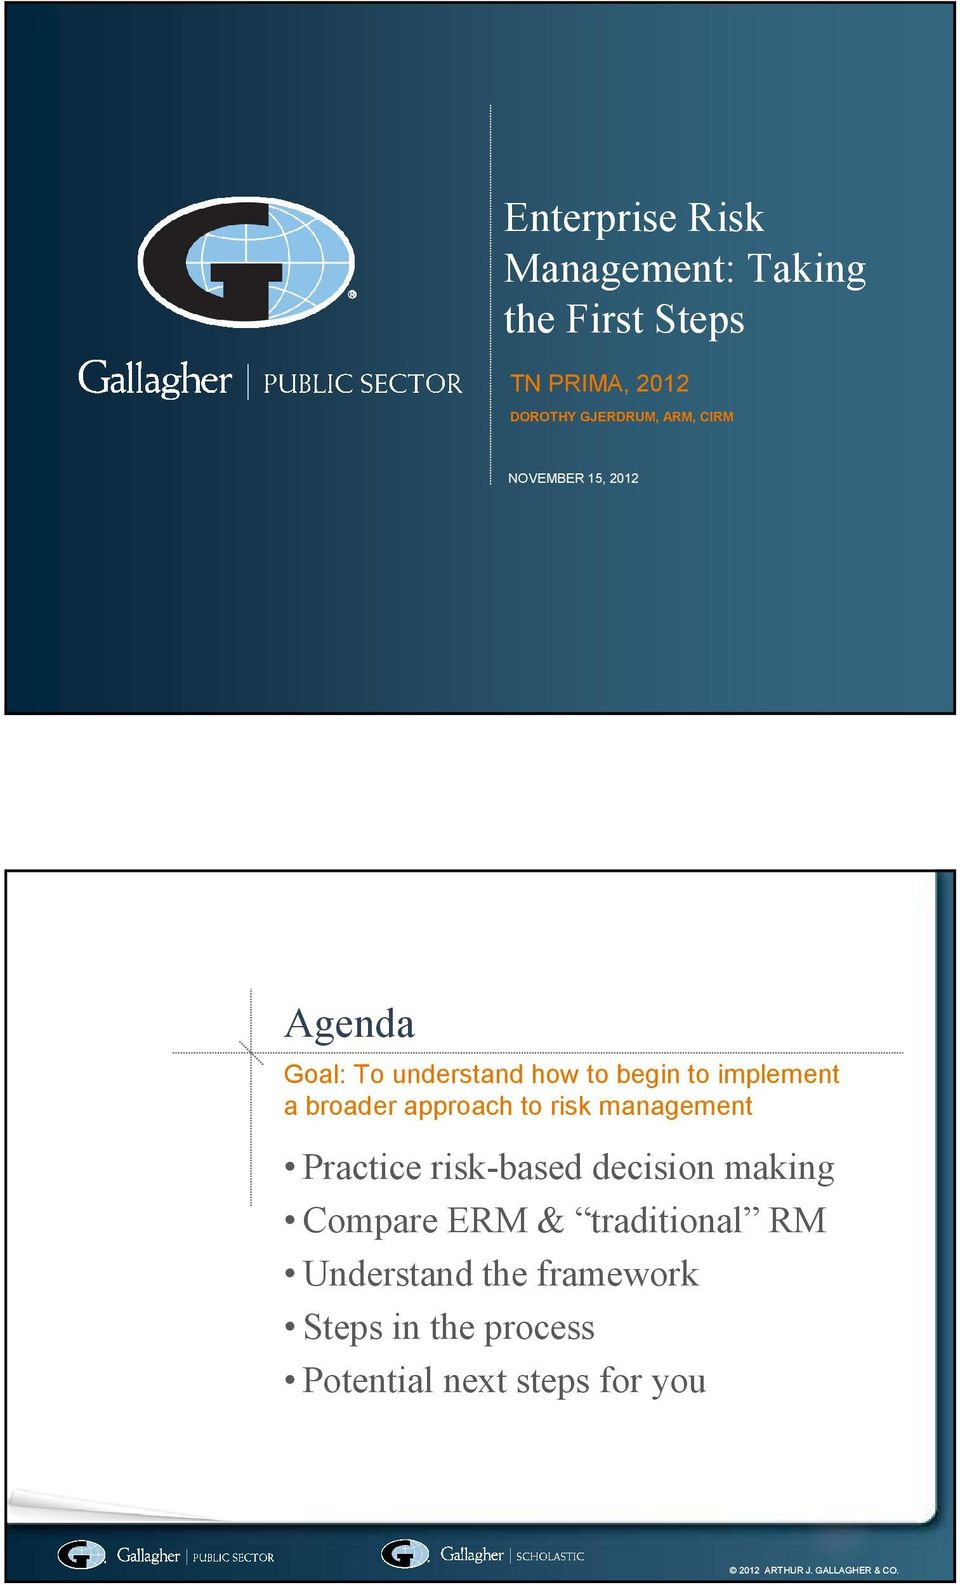 broader approach to risk management Practice risk-based decision making Compare ERM &